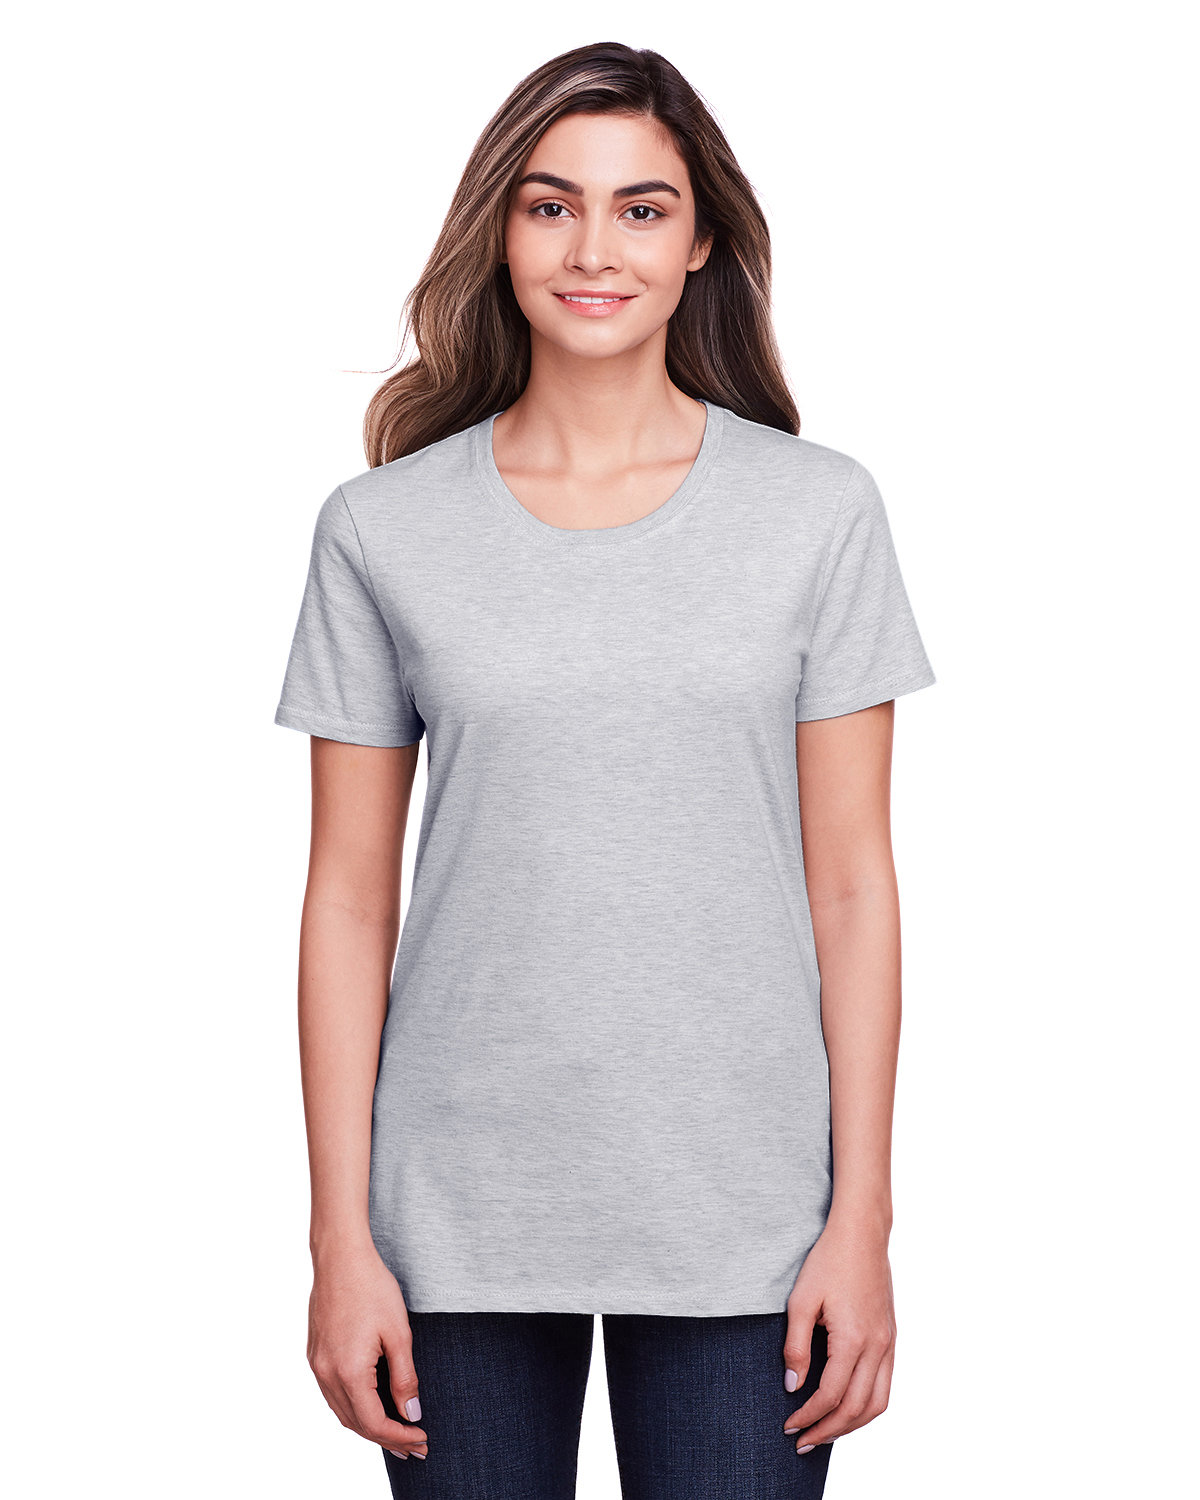 Fruit of the Loom Ladies' ICONIC™ T-Shirt ATHLETIC HEATHER